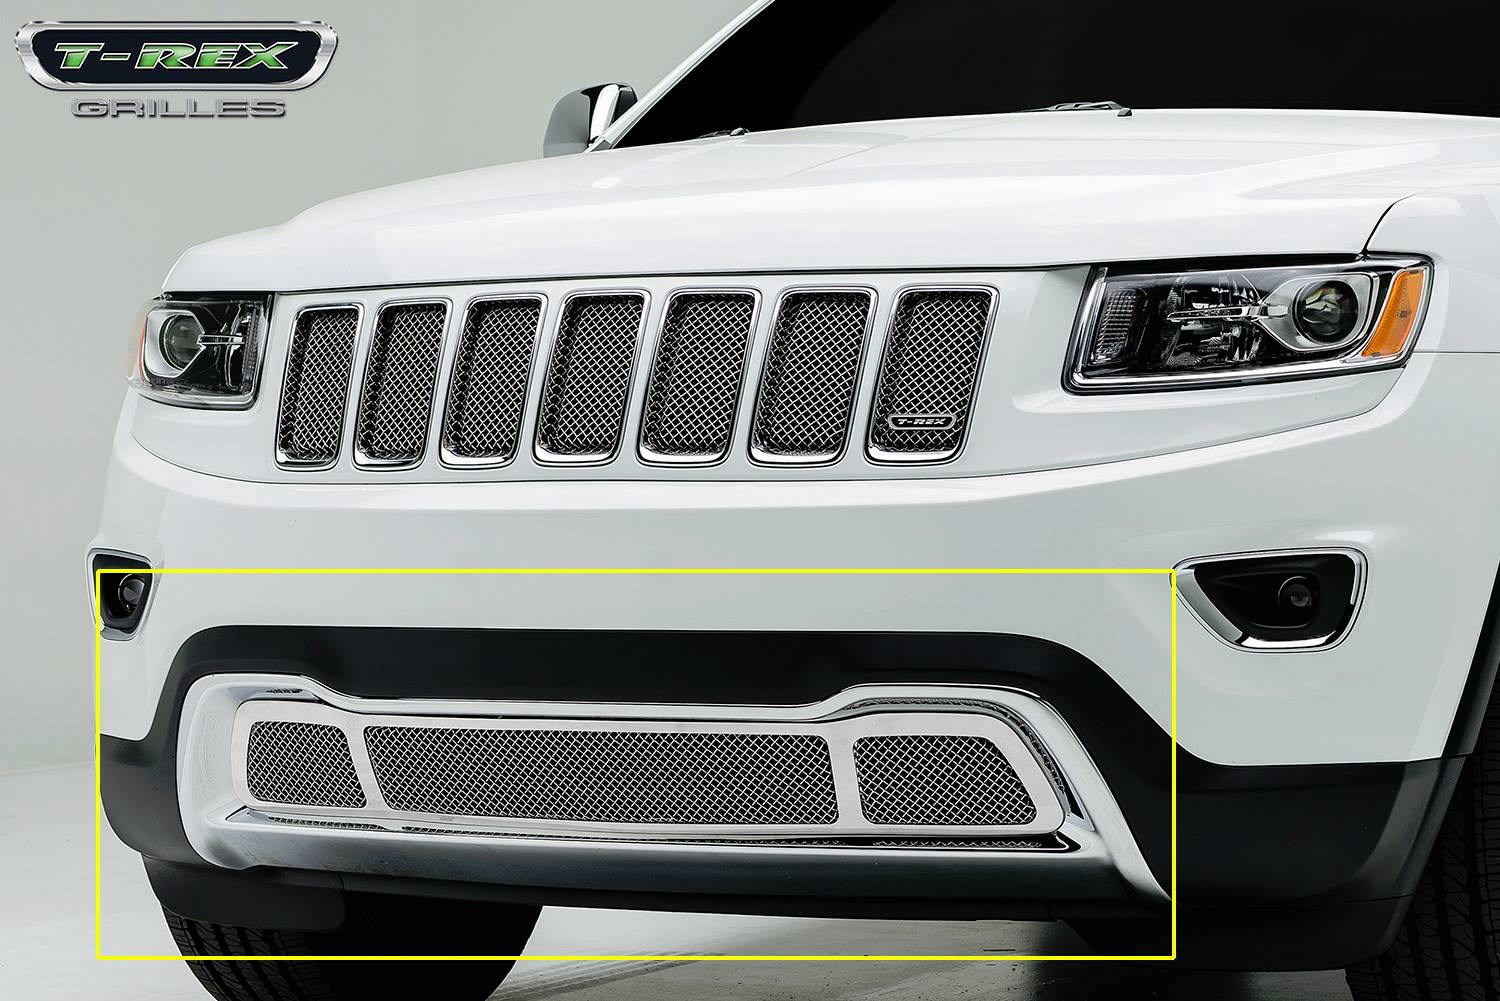 Jeep Grand Cherokee Upper Class Stainless Steel - Chrome Bumper Mesh Grille - Pt # 57488